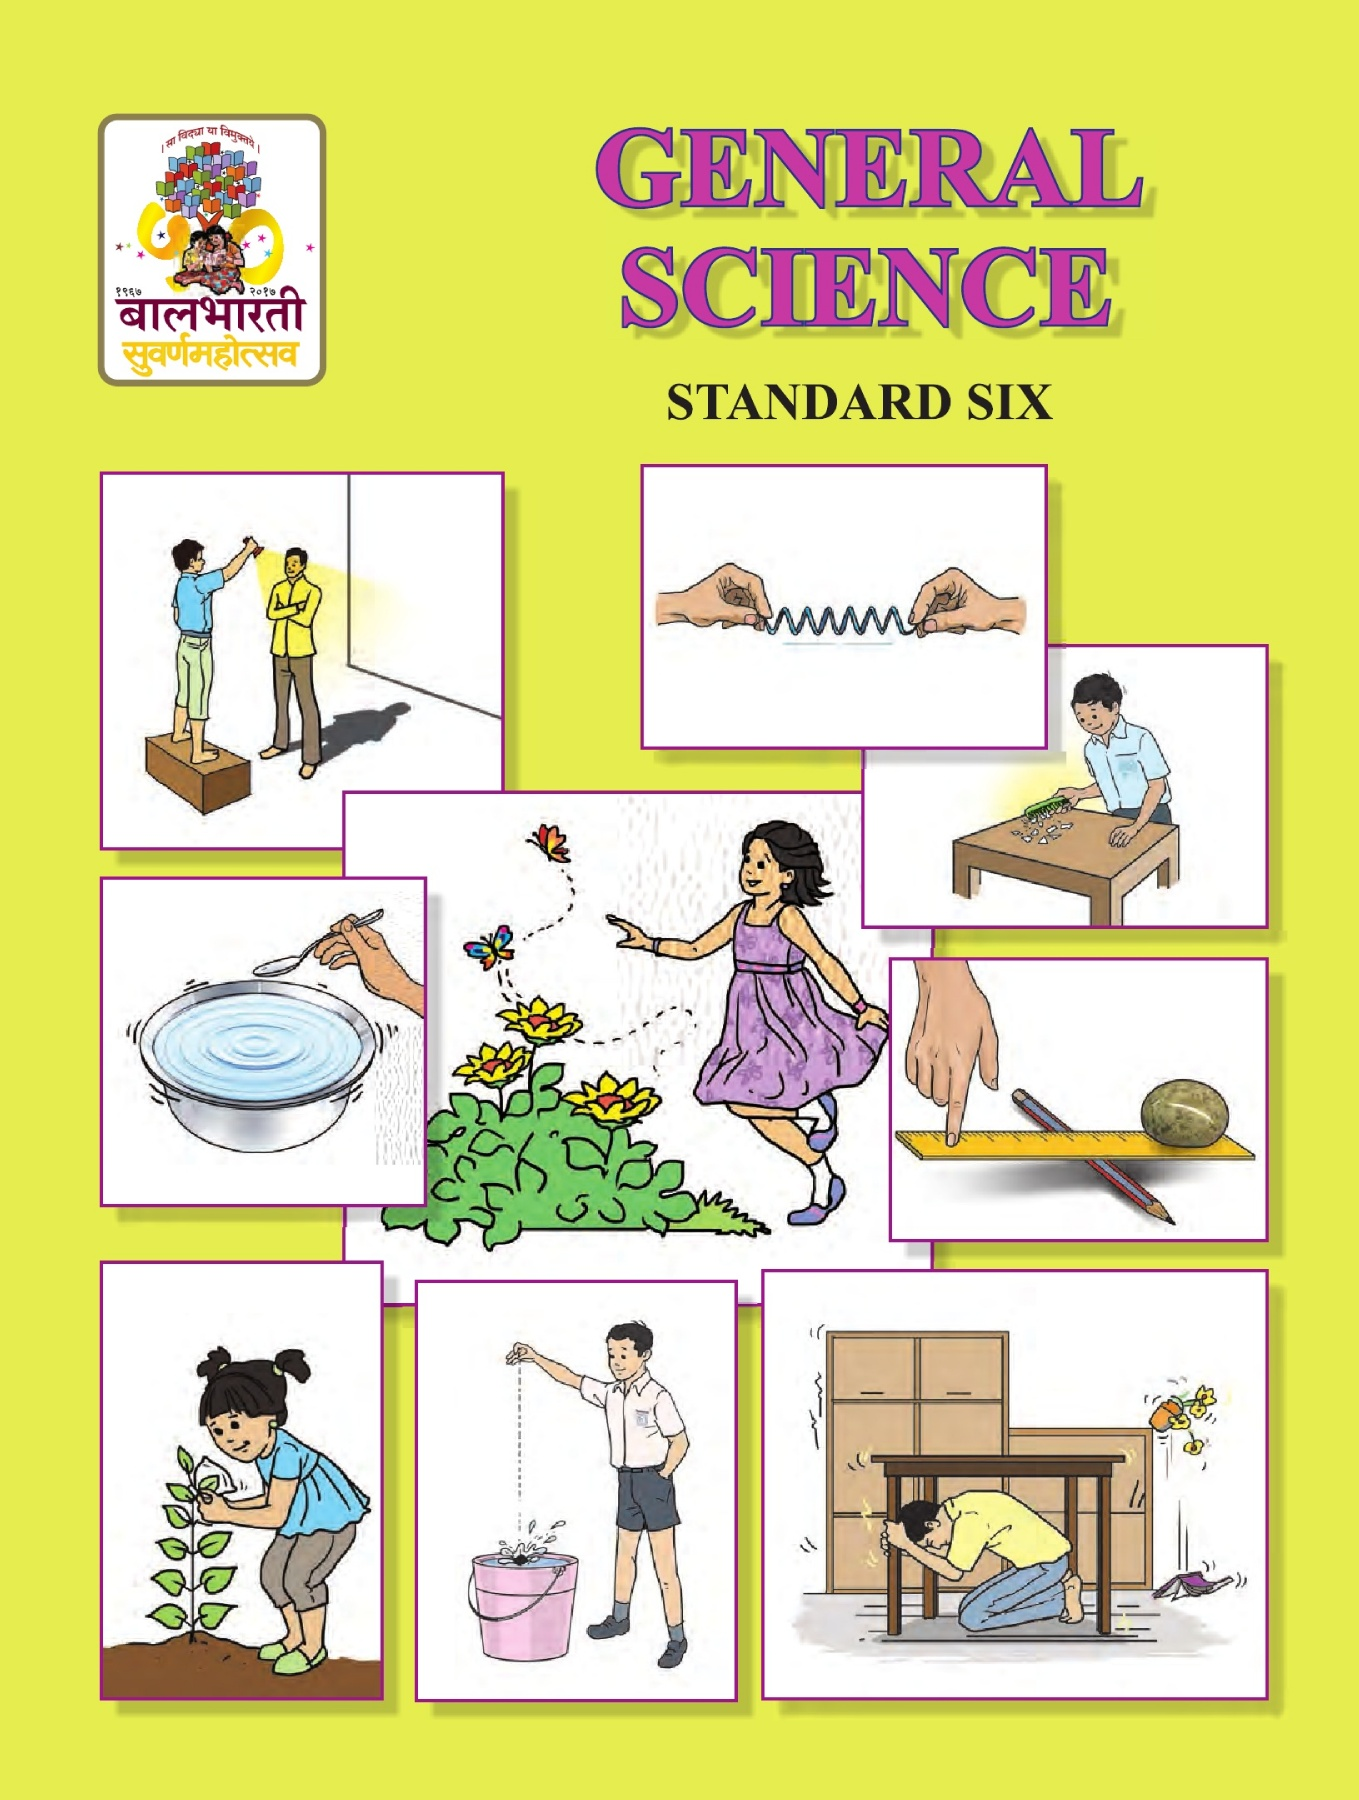 Std 6thsub General Science Pages 1 50 Text Version Anyflip Hard Wiring Zsi Oven Along With Diagram 603020012